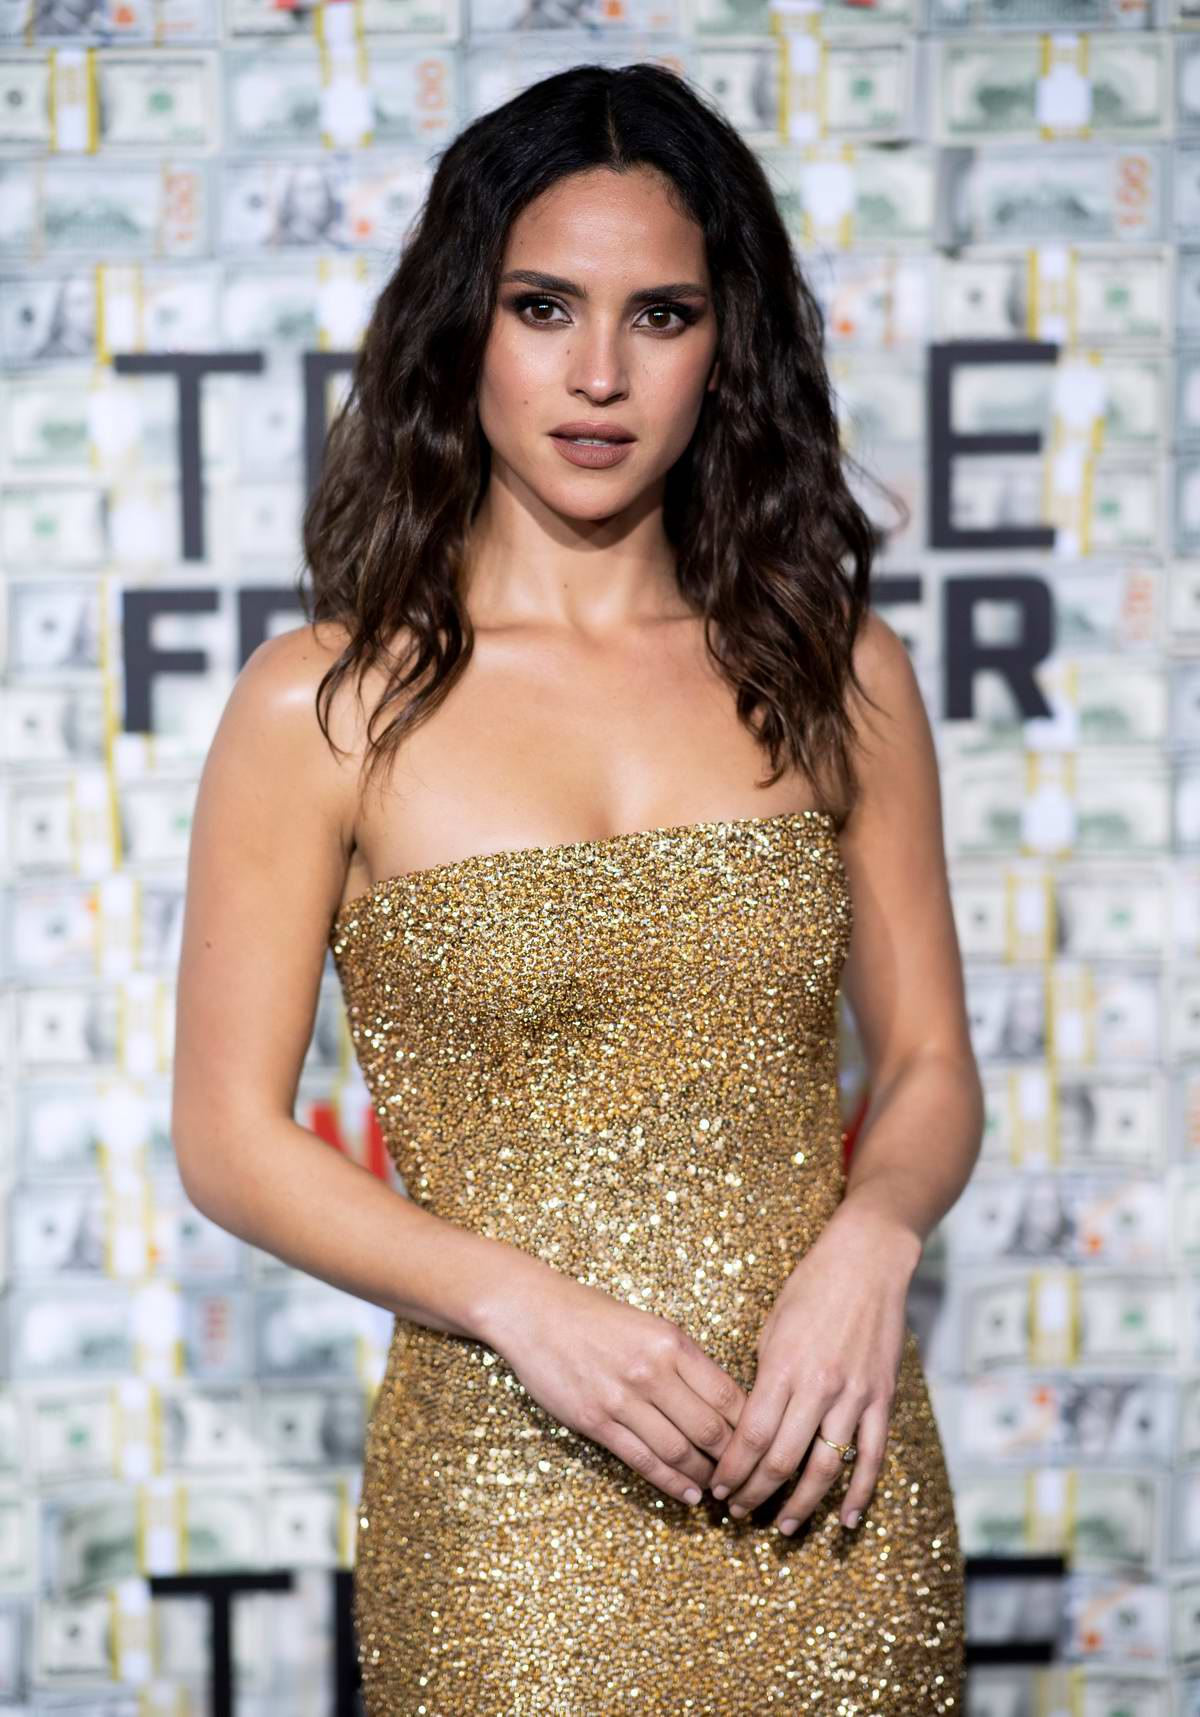 Adria Arjona attends 'Triple Frontier' premiere in New York City